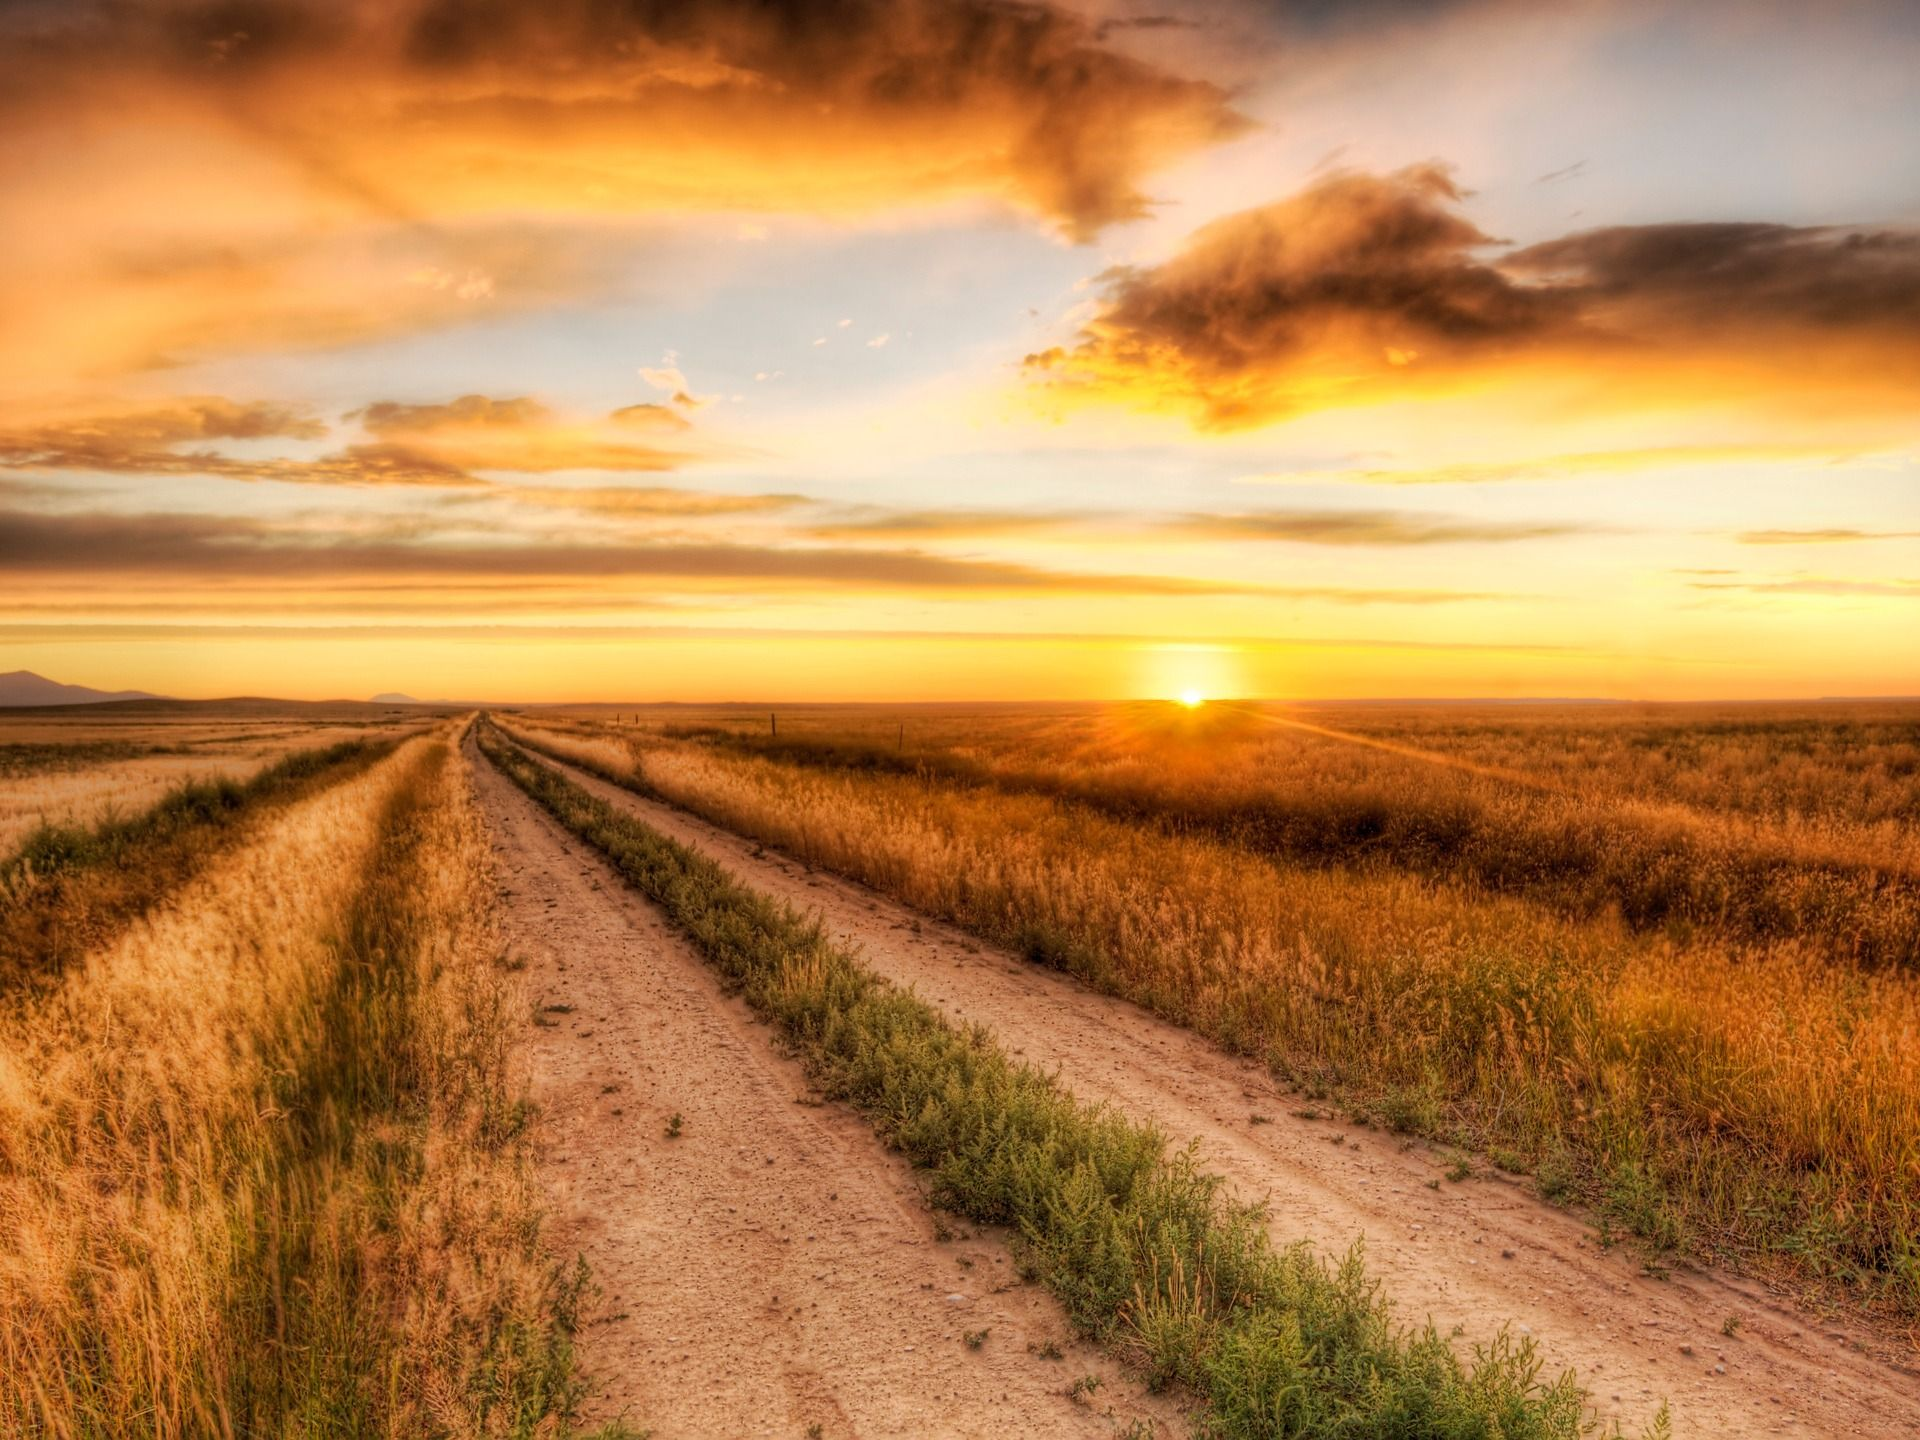 The Lonely Road Wallpaper Landscape Nature Wallpapers In Jpg